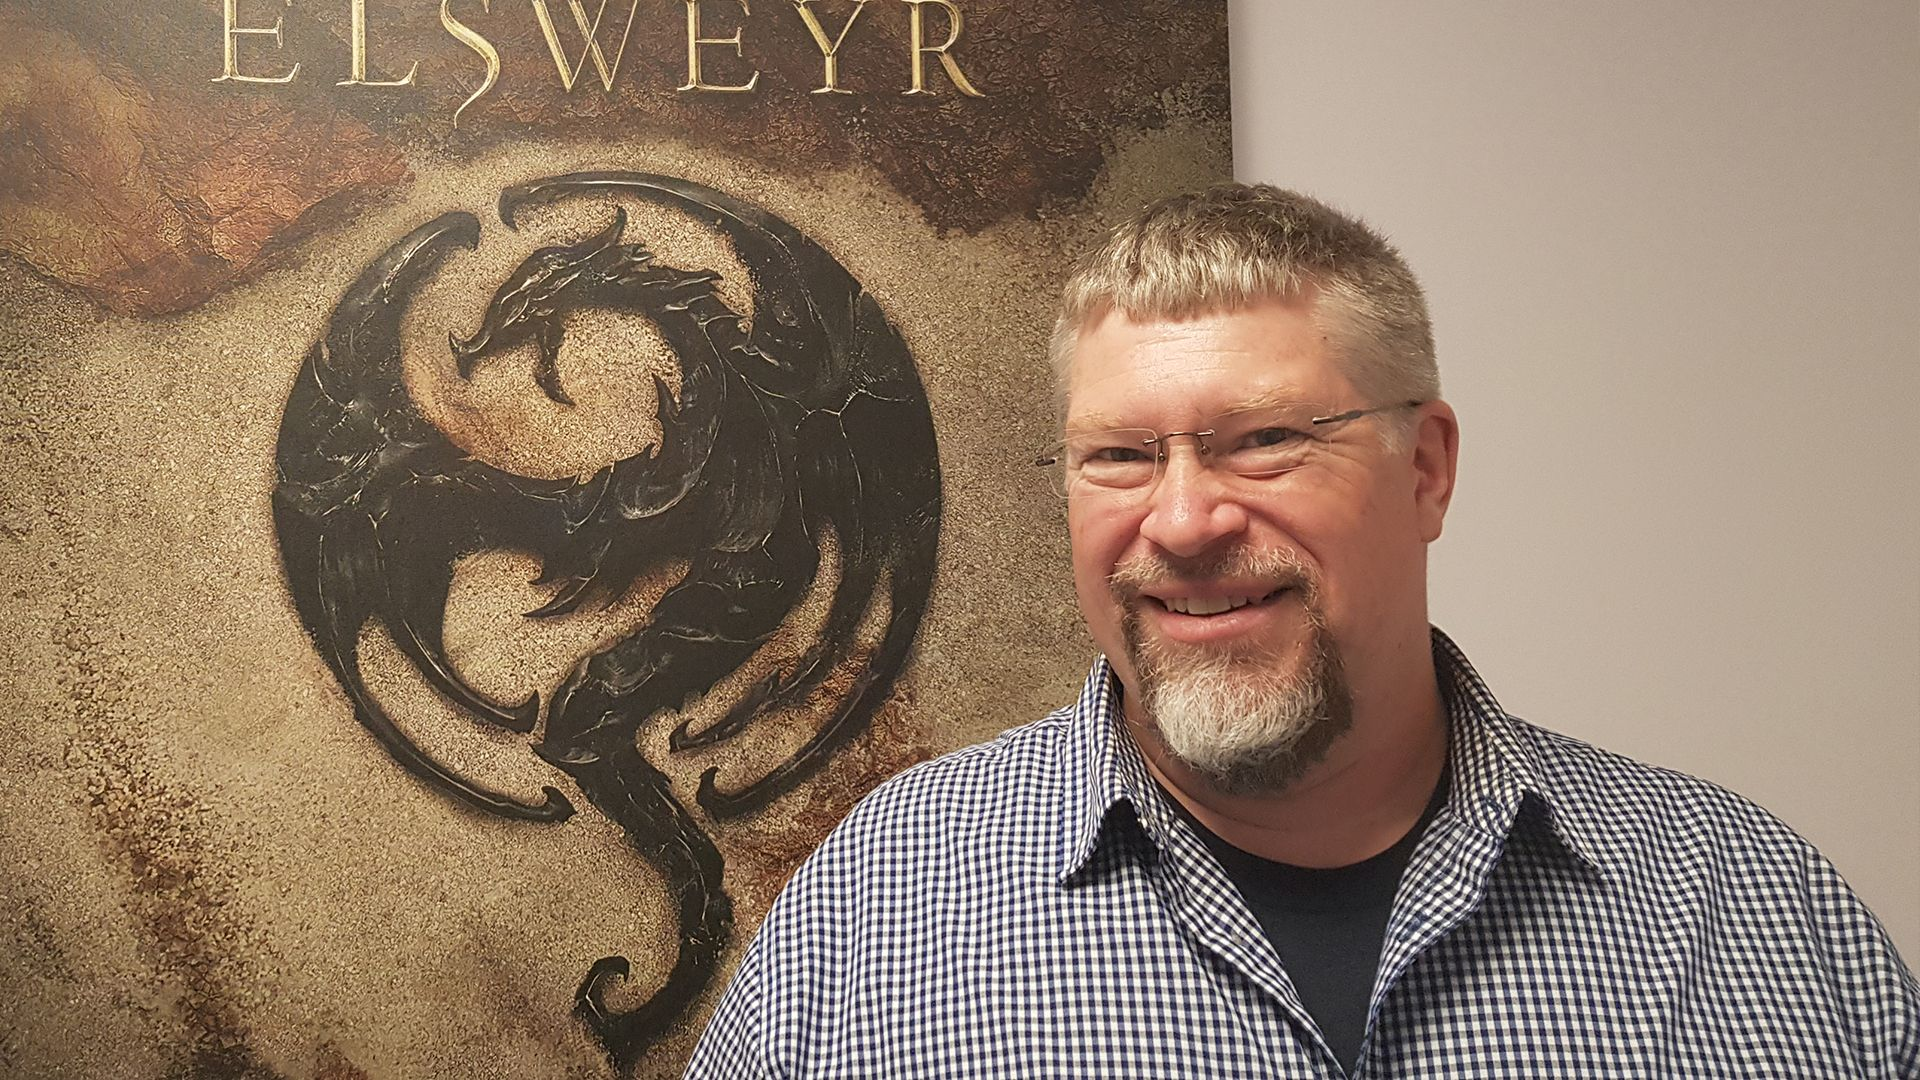 The Elder Scrolls Online: Eslweyr - Intervista a Matt Firor